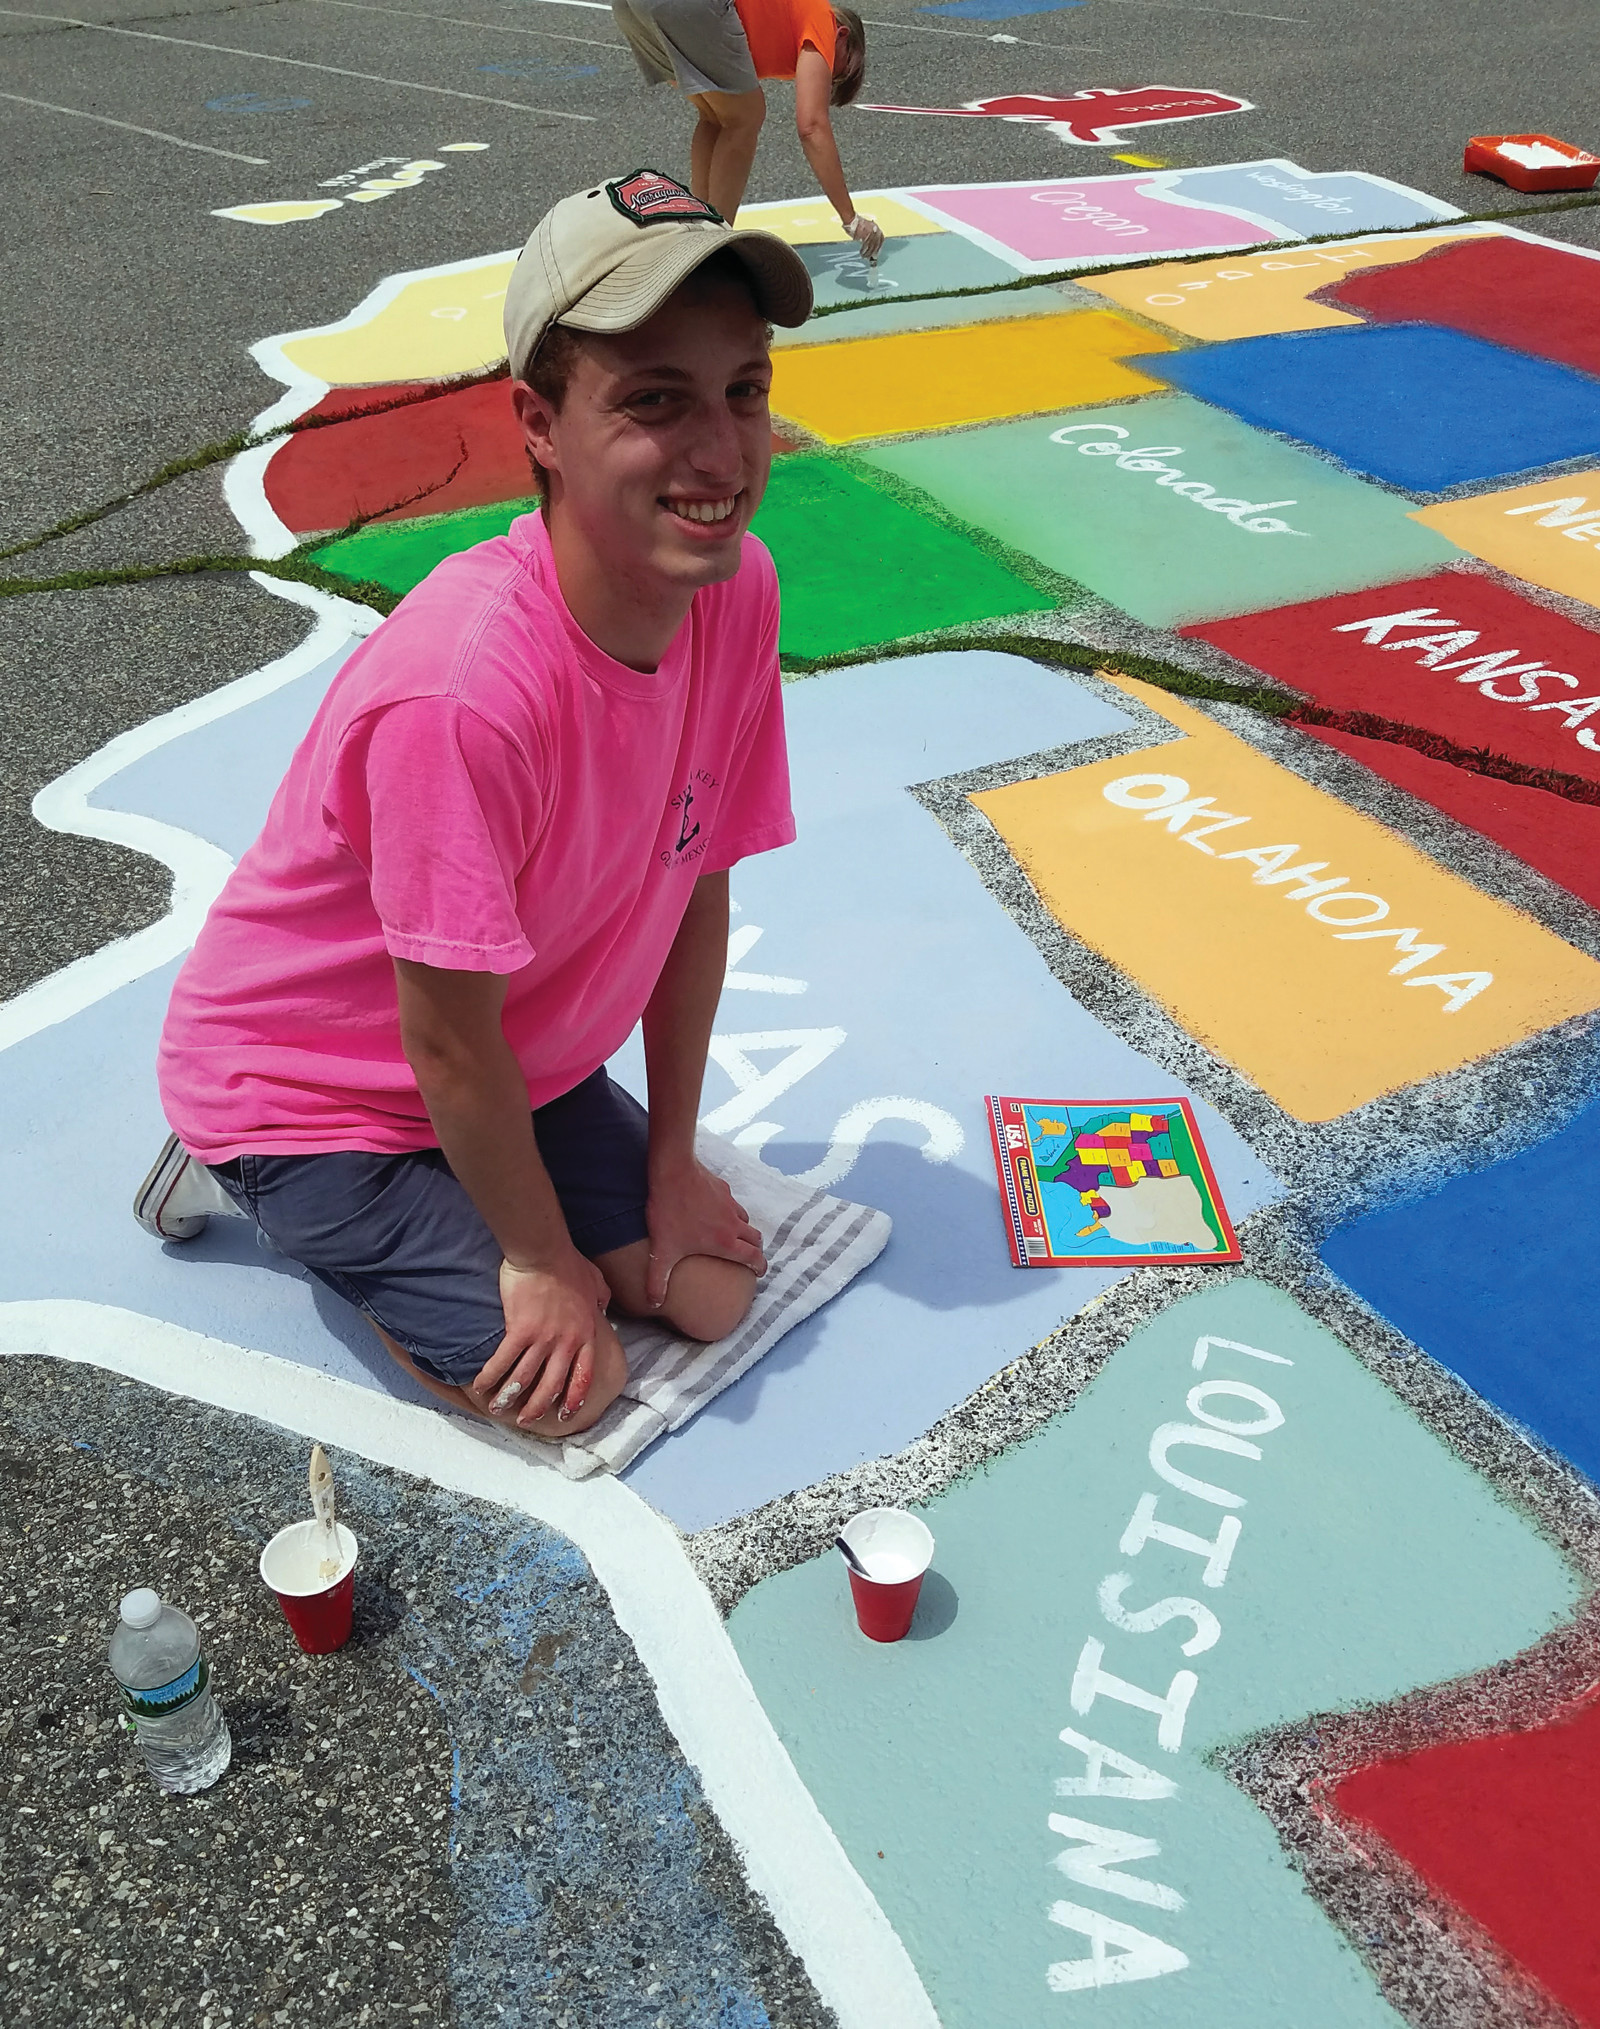 MANY HANDS: Marchetti was able to recruit many of his friends and family to come out on one of the hottest days of the month so far, to paint the blacktop with bright colors and designs for the students at Woodridge School.